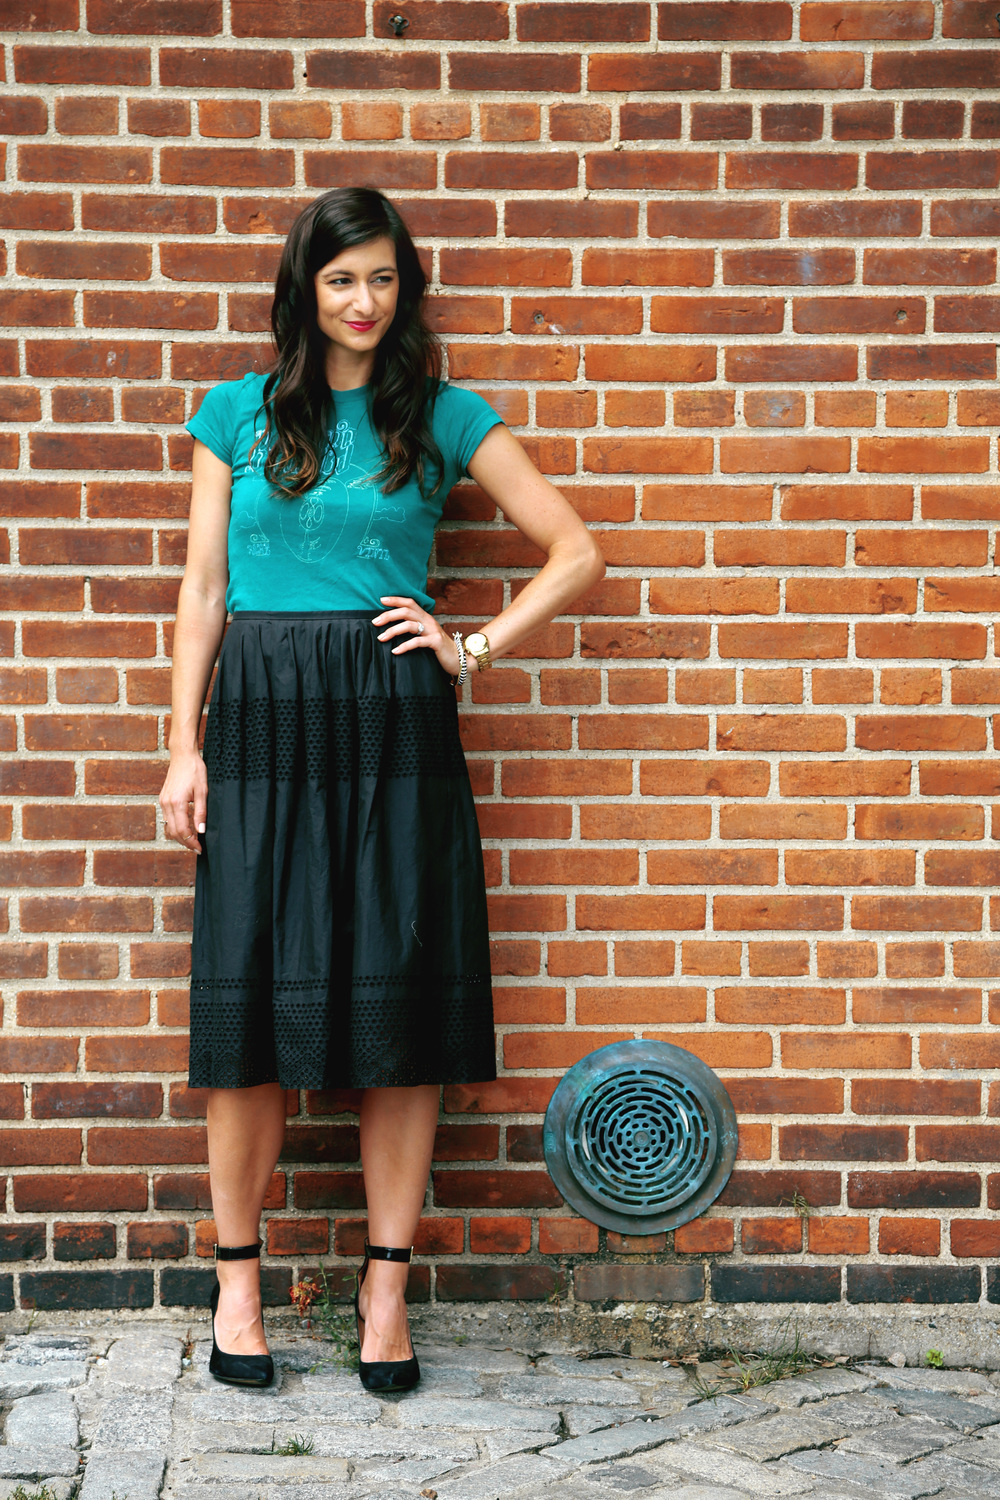 aa54283b72 Graphic Tee + Midi Skirt = Dressy Casual Perfection — Your Sunday Best